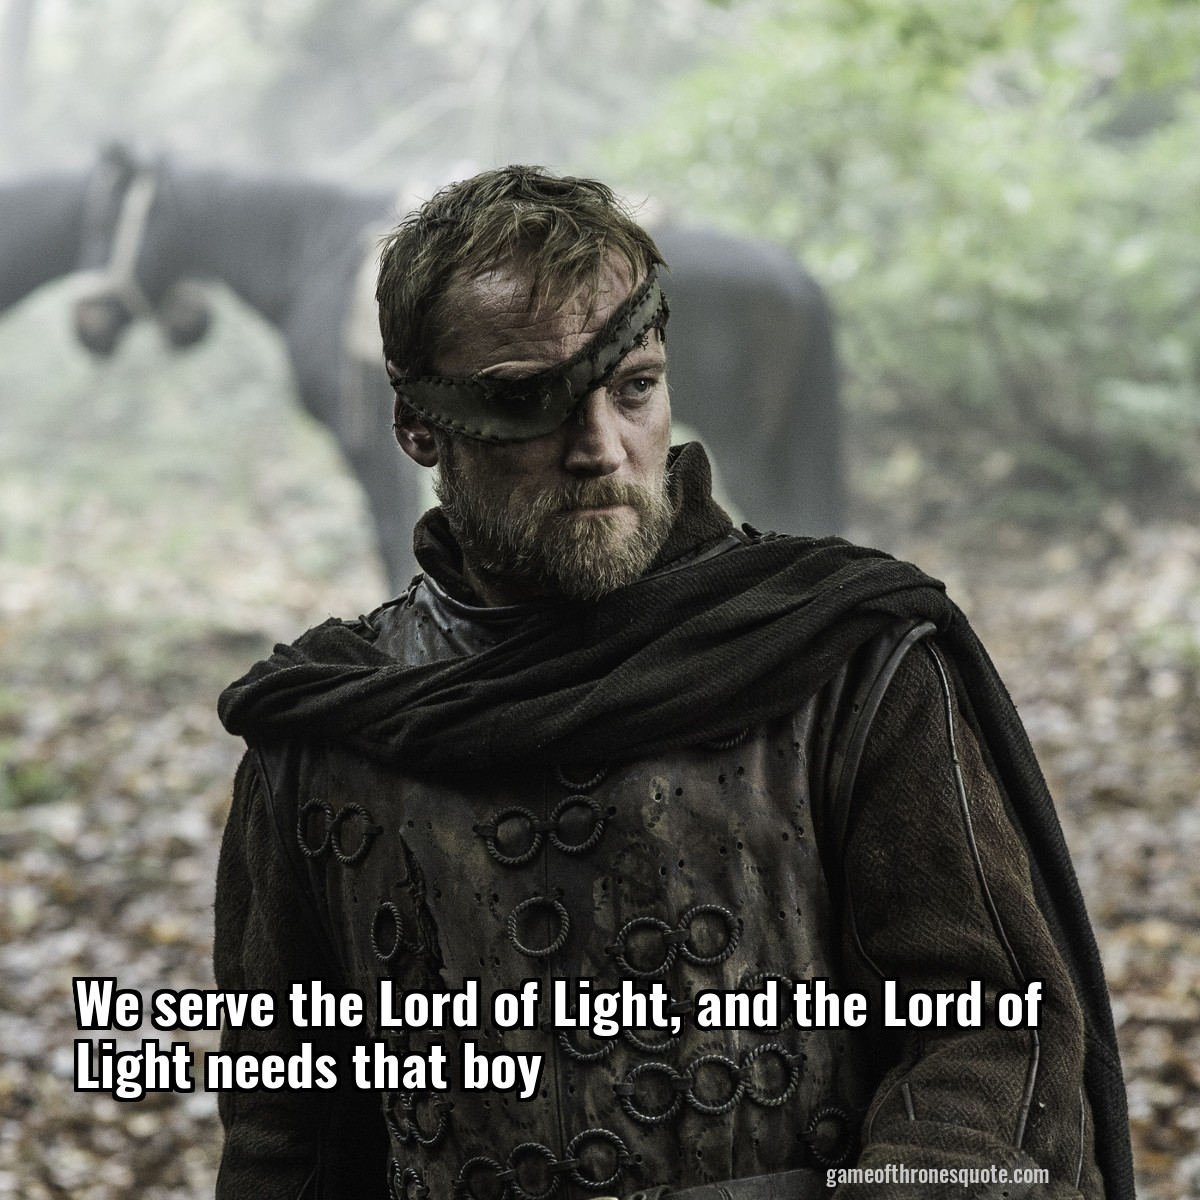 We serve the Lord of Light, and the Lord of Light needs that boy